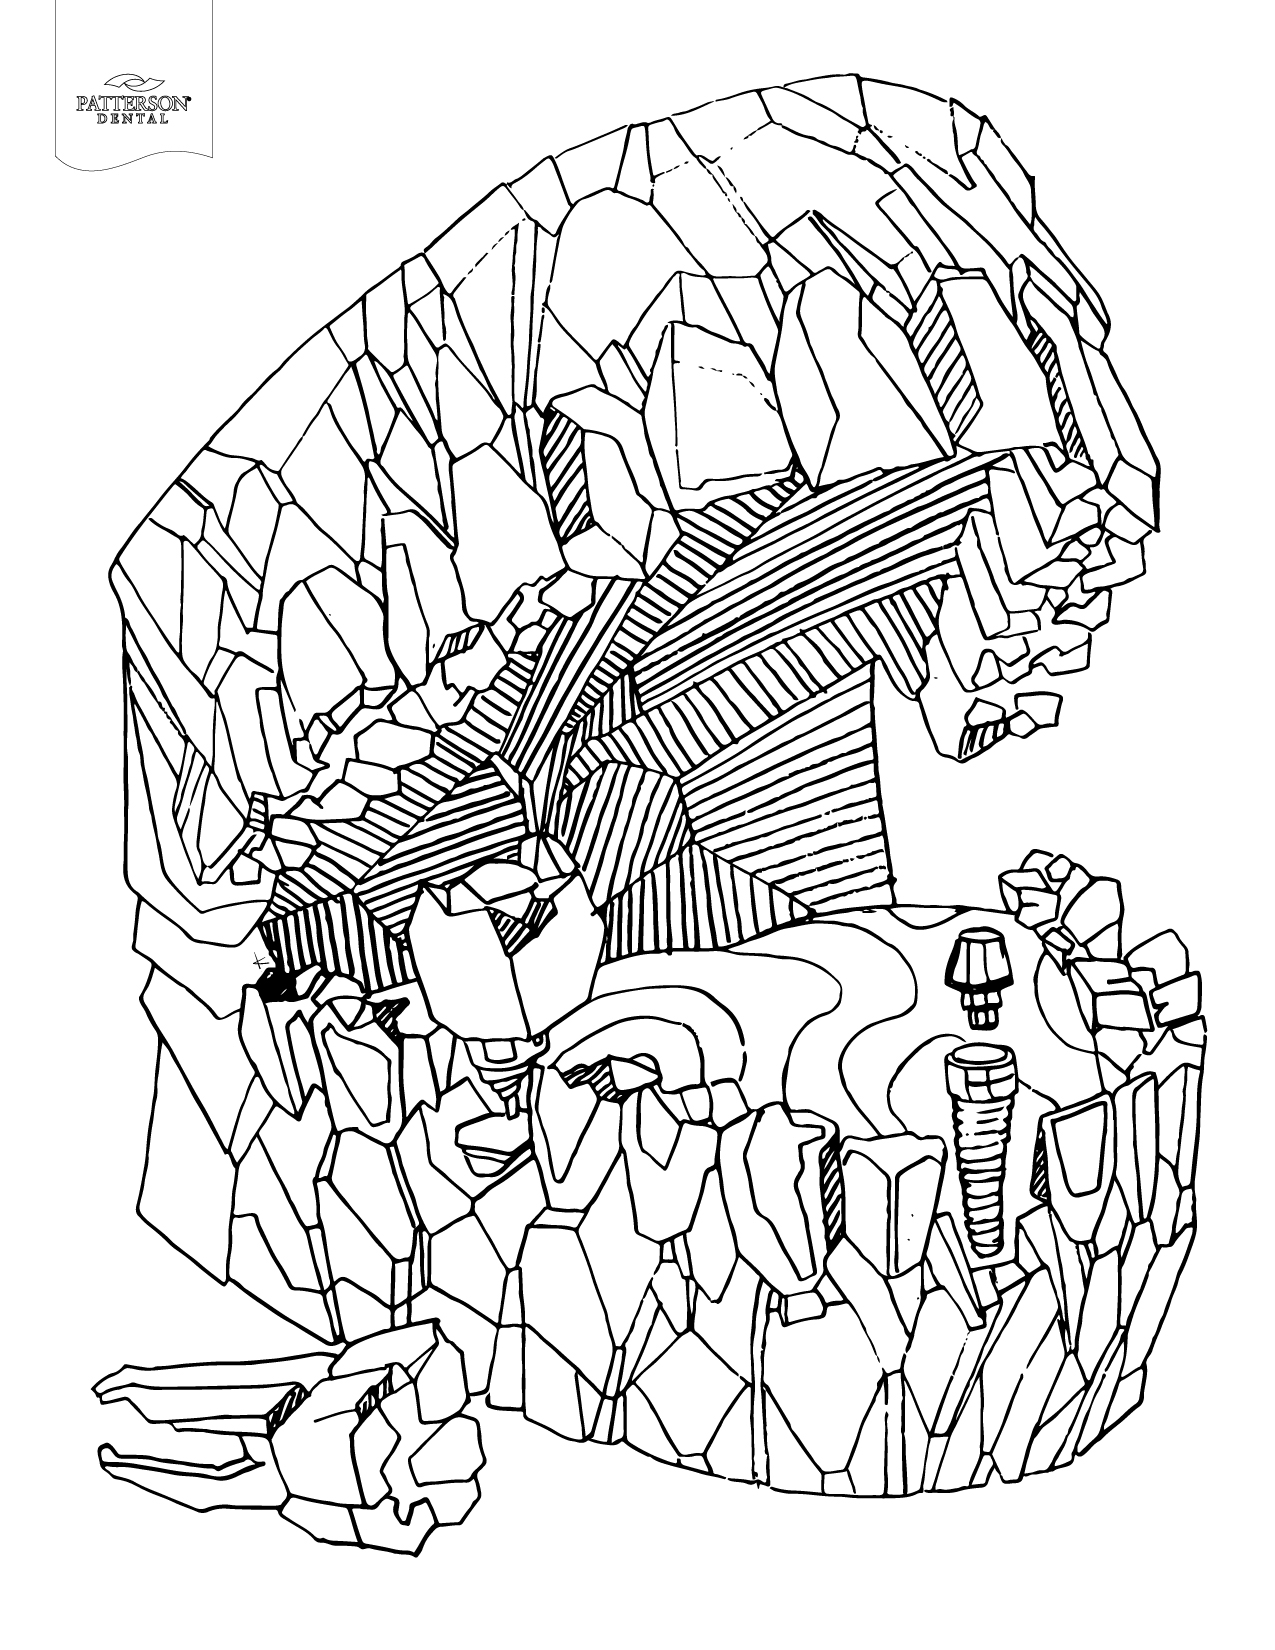 Colouring in pages dental - Jaw Carved From Rock Coloring Page From Patterson Dental